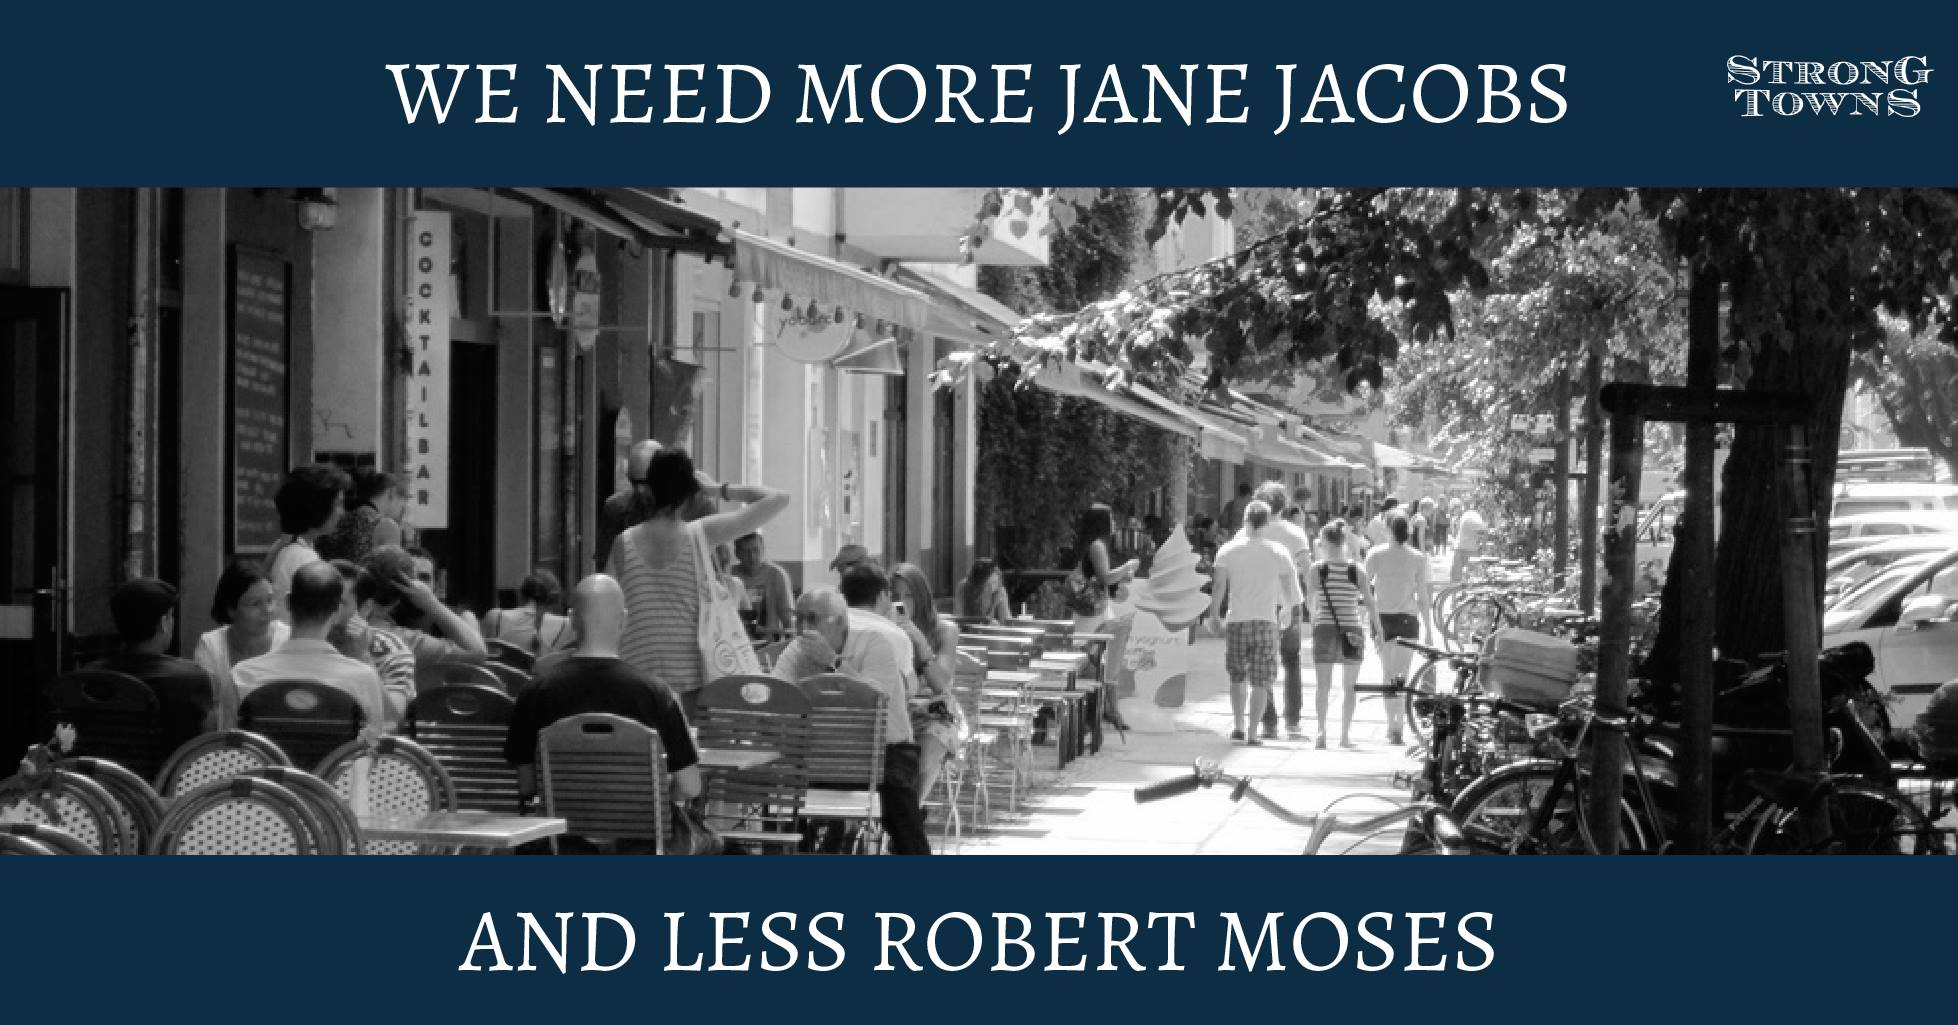 We Need more Jane Jacobs and less Robert Moses poster.